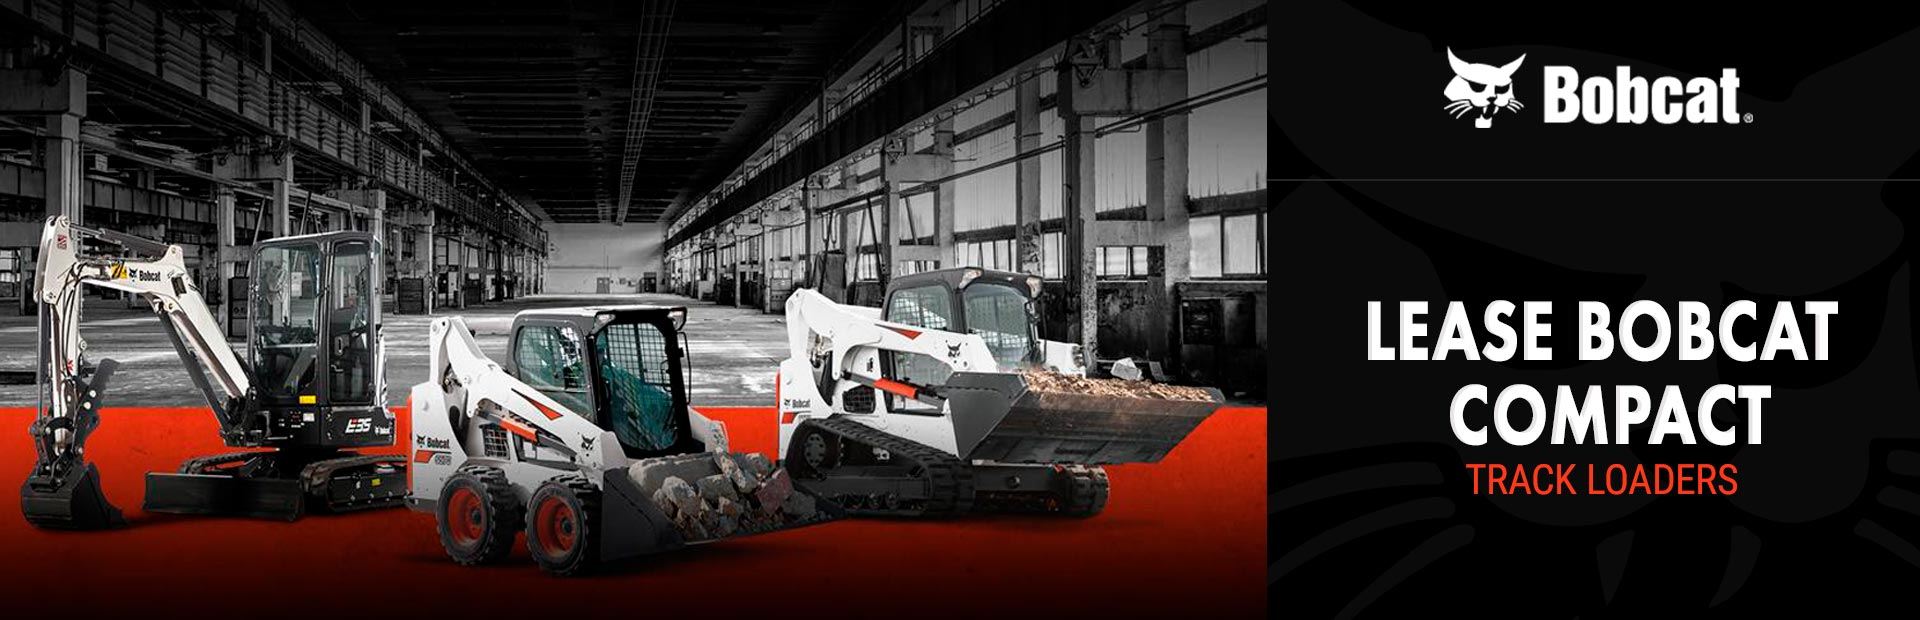 Bobcat: Lease Bobcat Compact Track Loaders